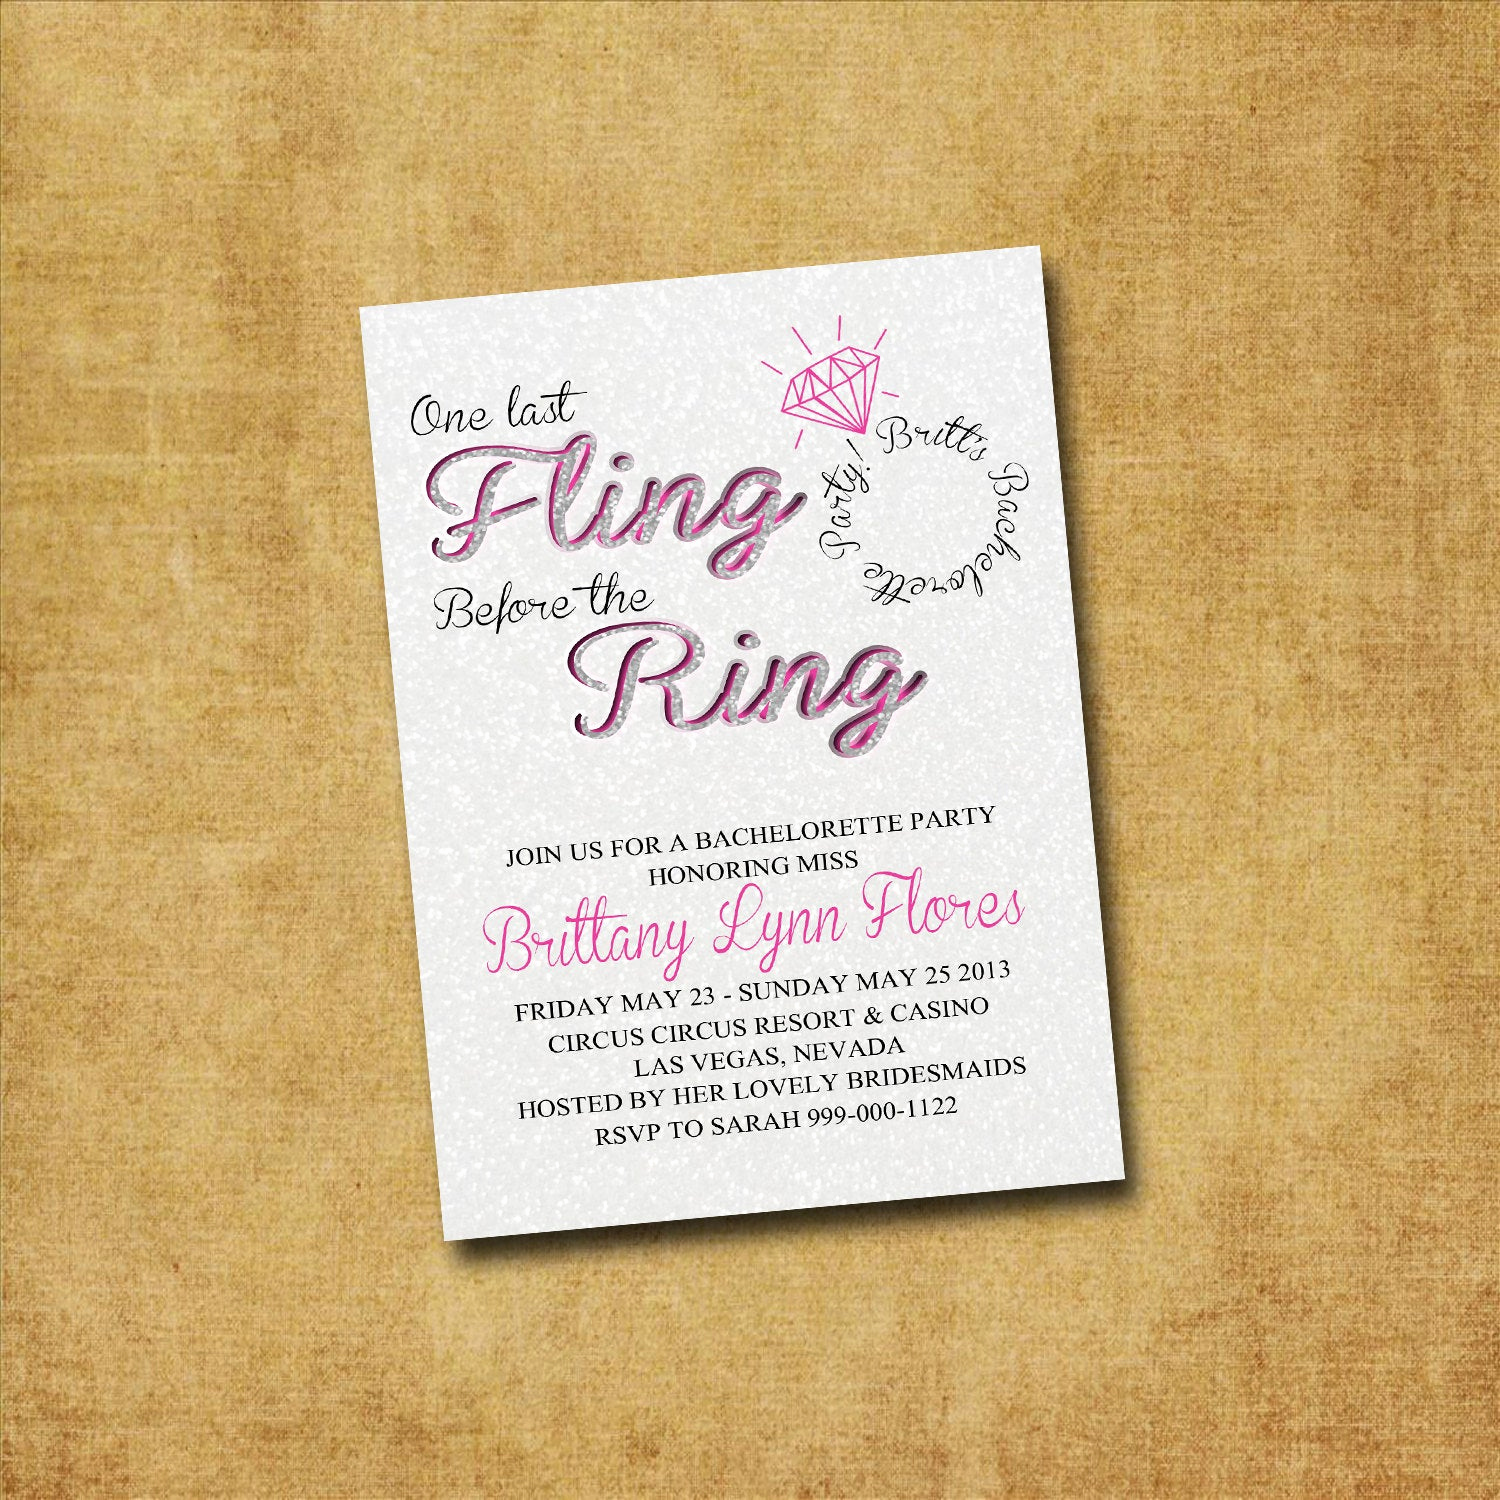 Joint Bachelor Bachelorette Party Invitation Lovely Printable Bachelorette Invitation Fling before the by